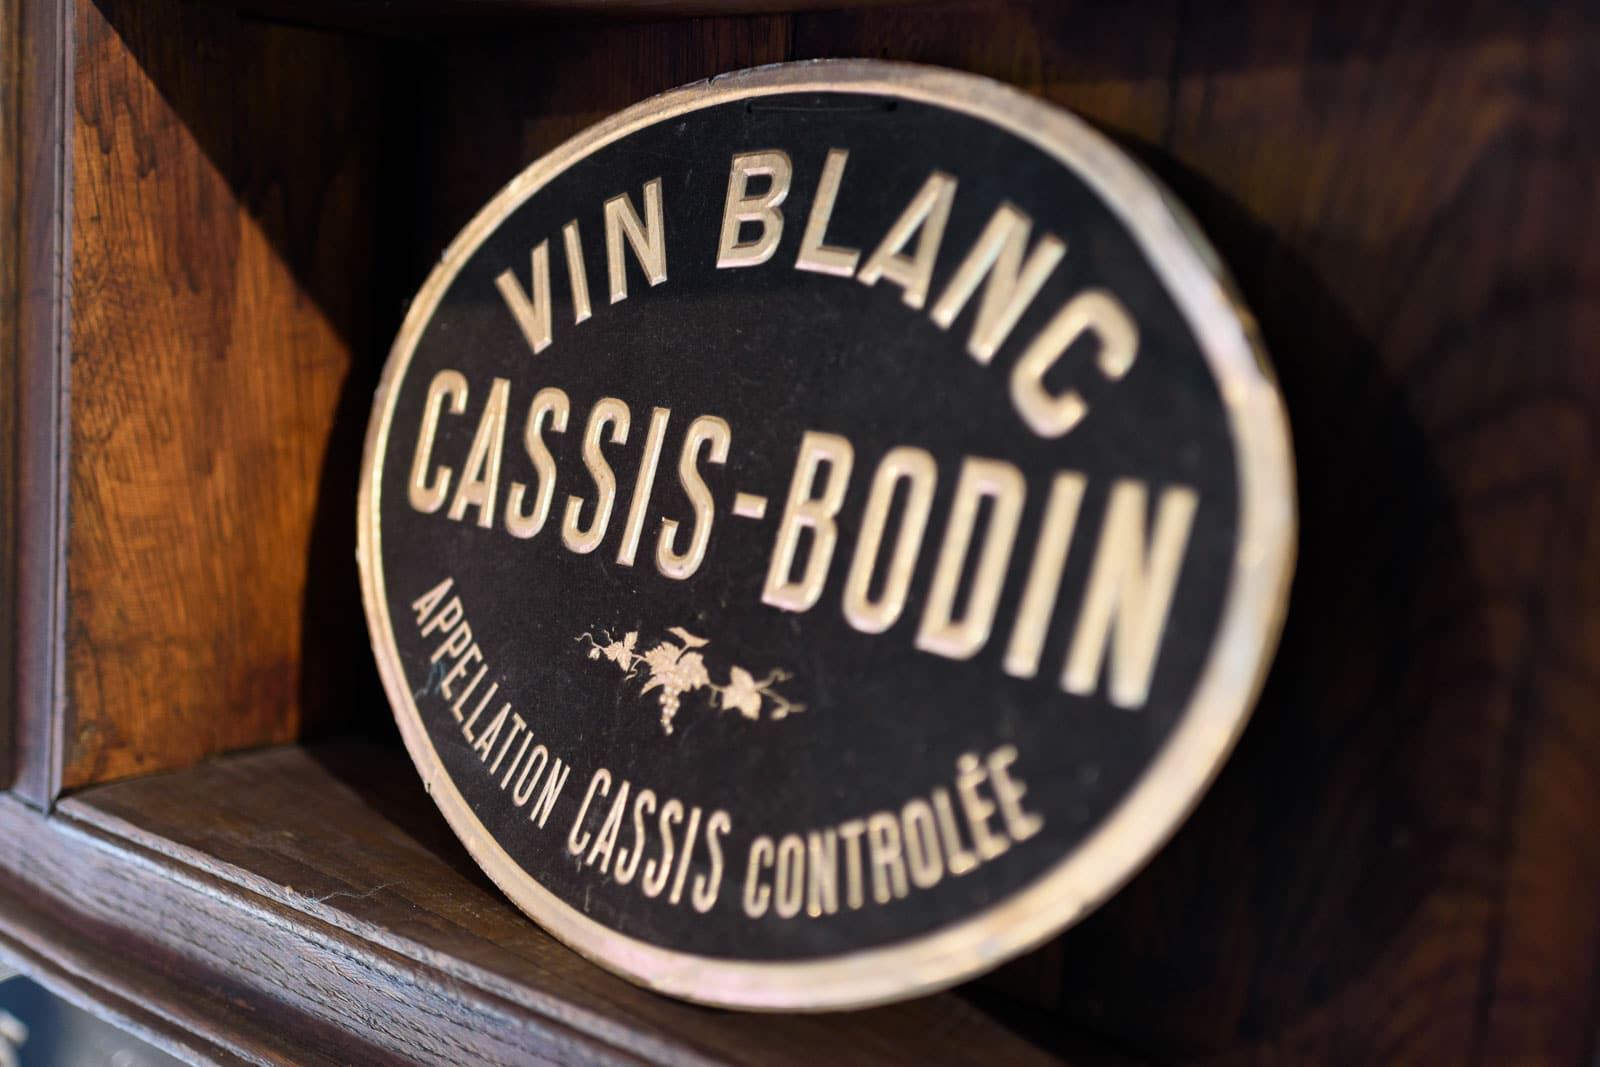 Bandol and Cassis wine tour, Bodin property